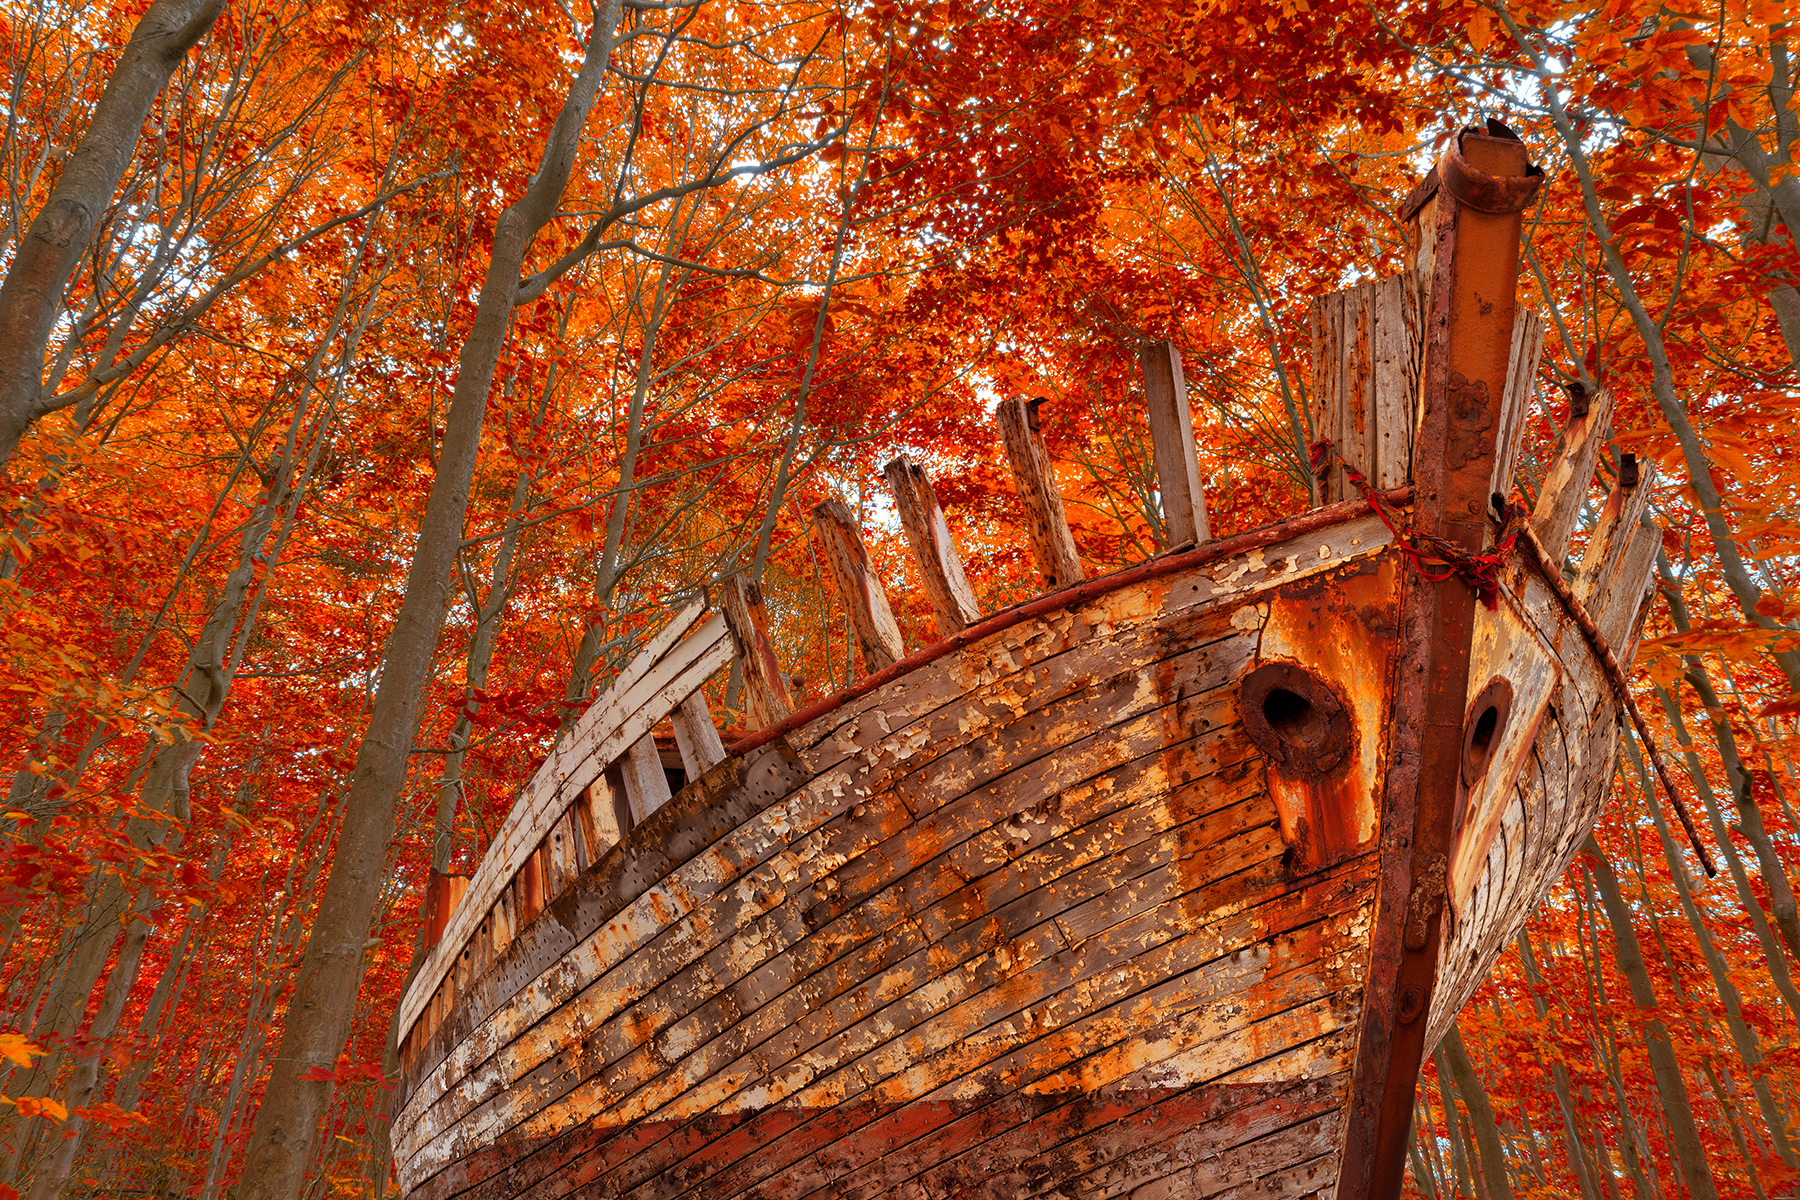 Fall Forest Shipwreck, Perspective, Picturesque, Peeling, Peeled, HQ Photo